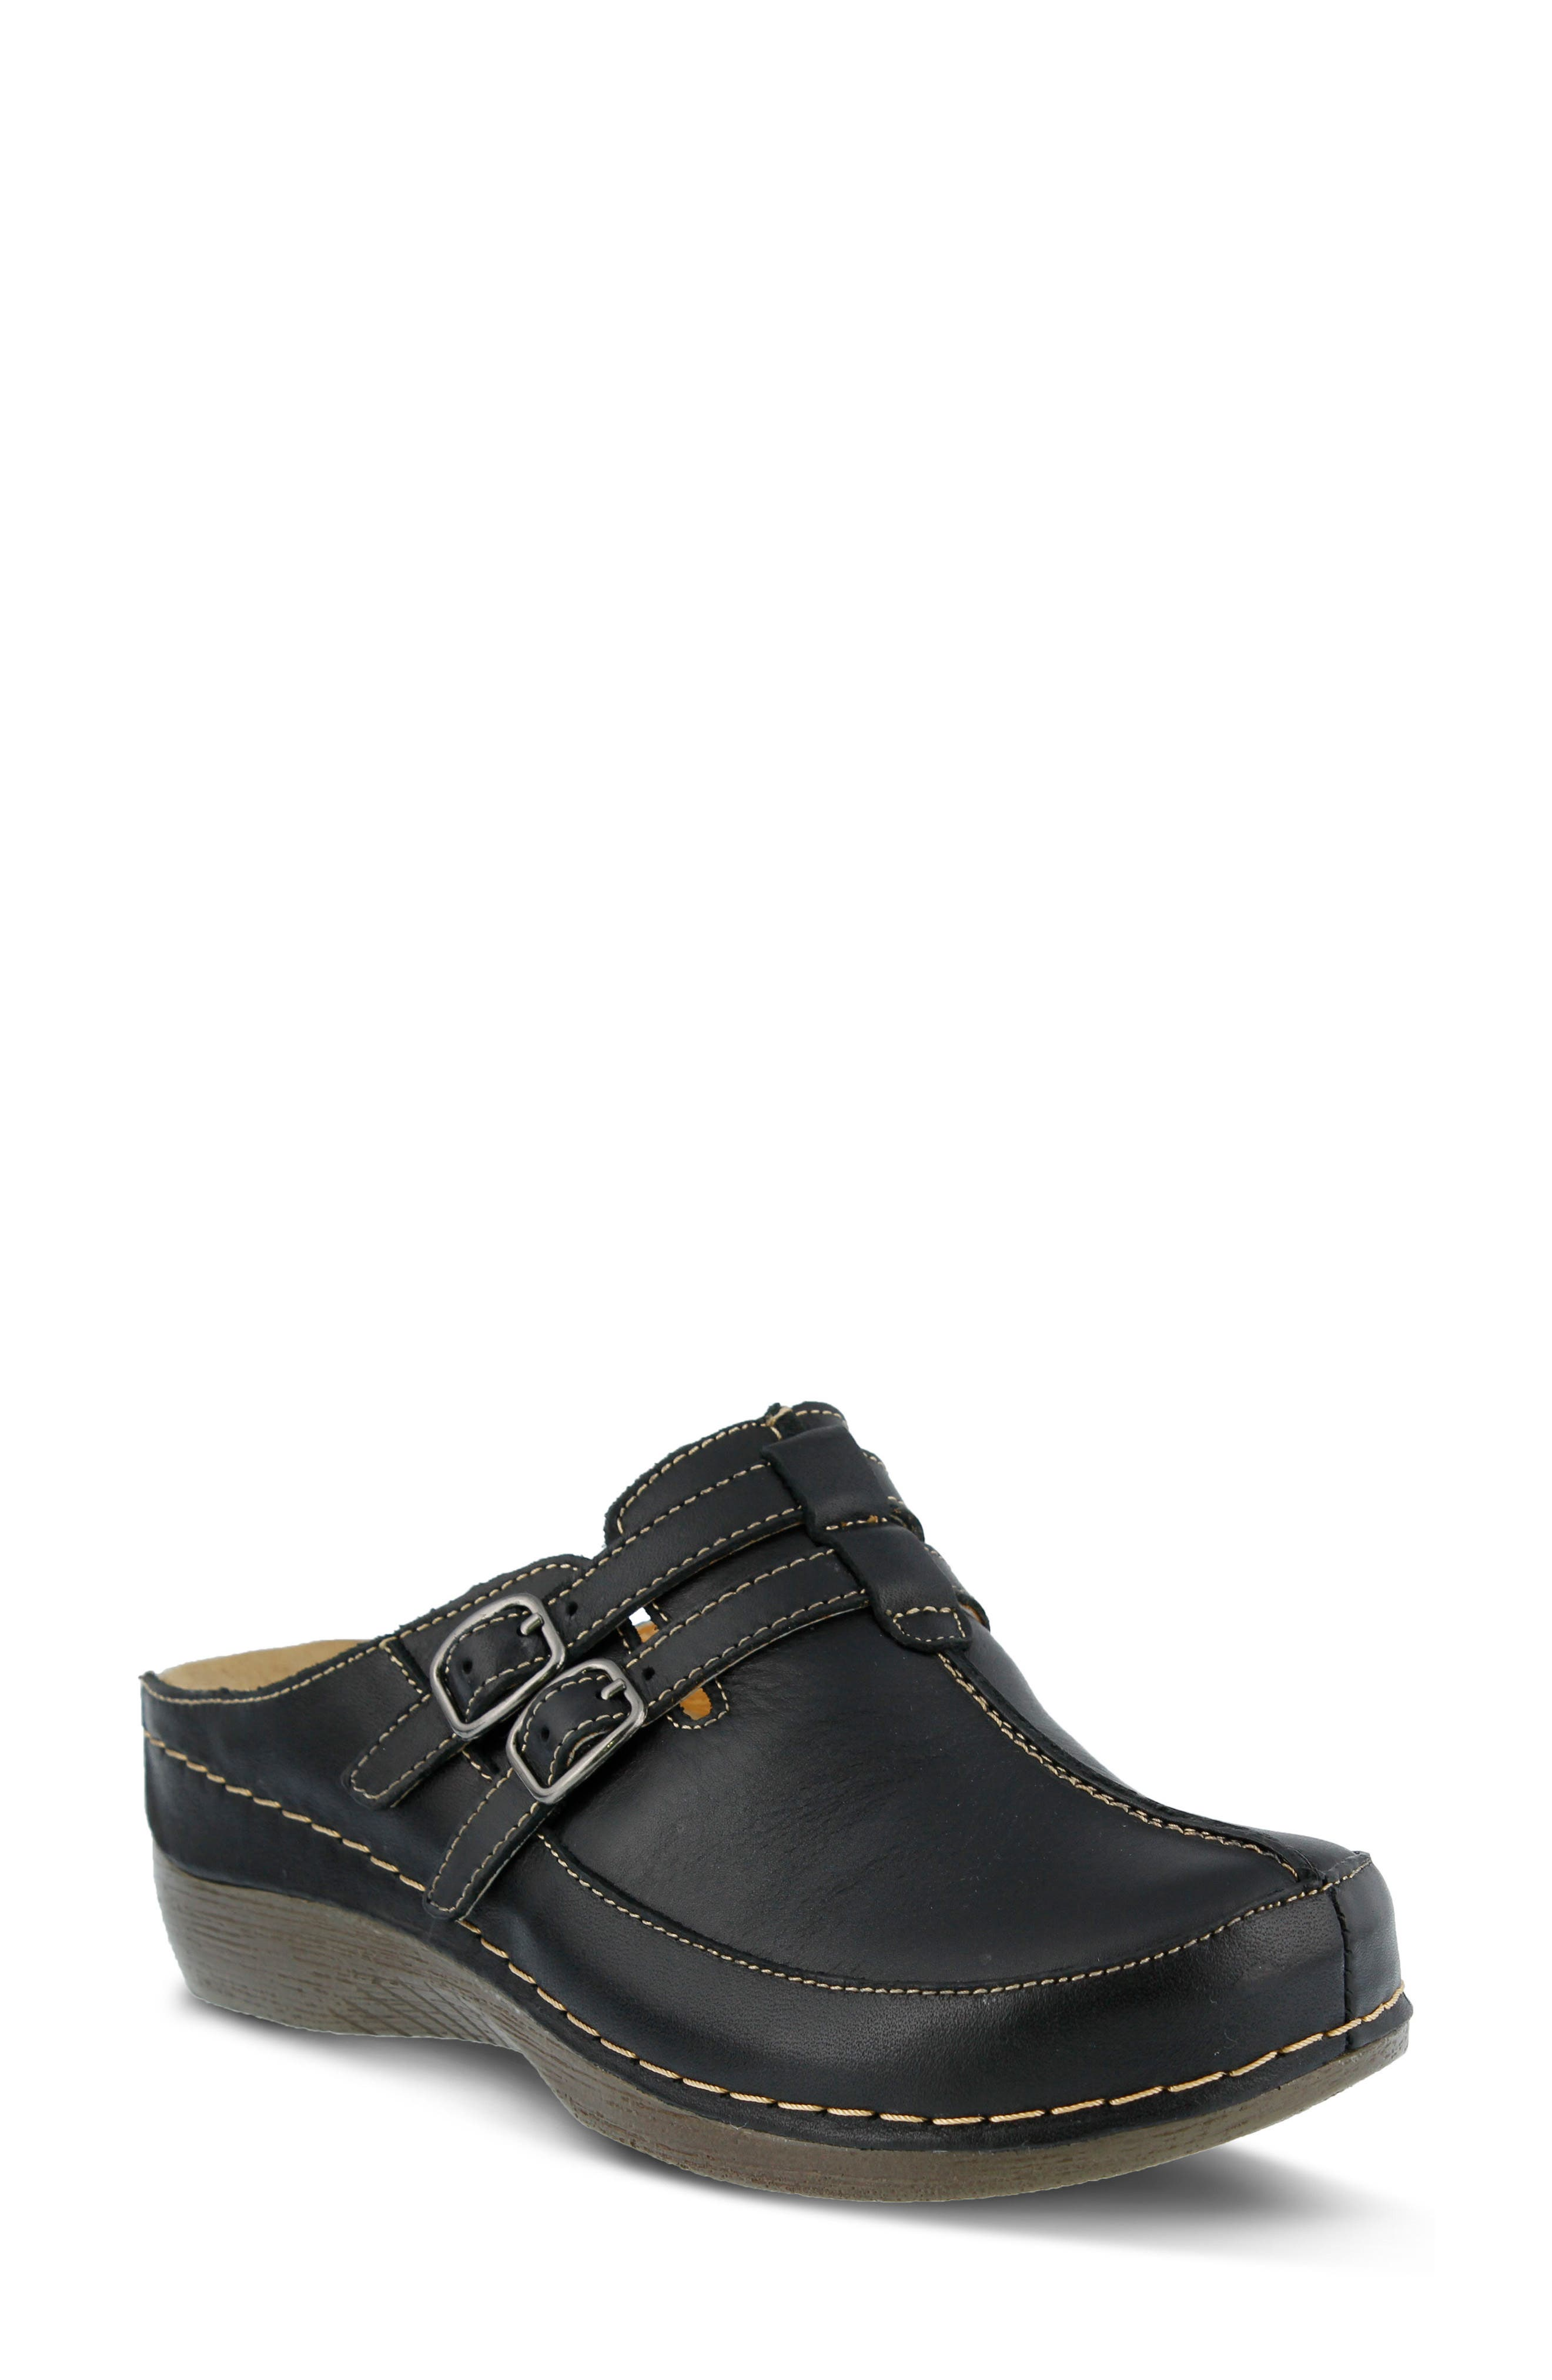 SPRING STEP,                             Happy Clog,                             Main thumbnail 1, color,                             BLACK LEATHER